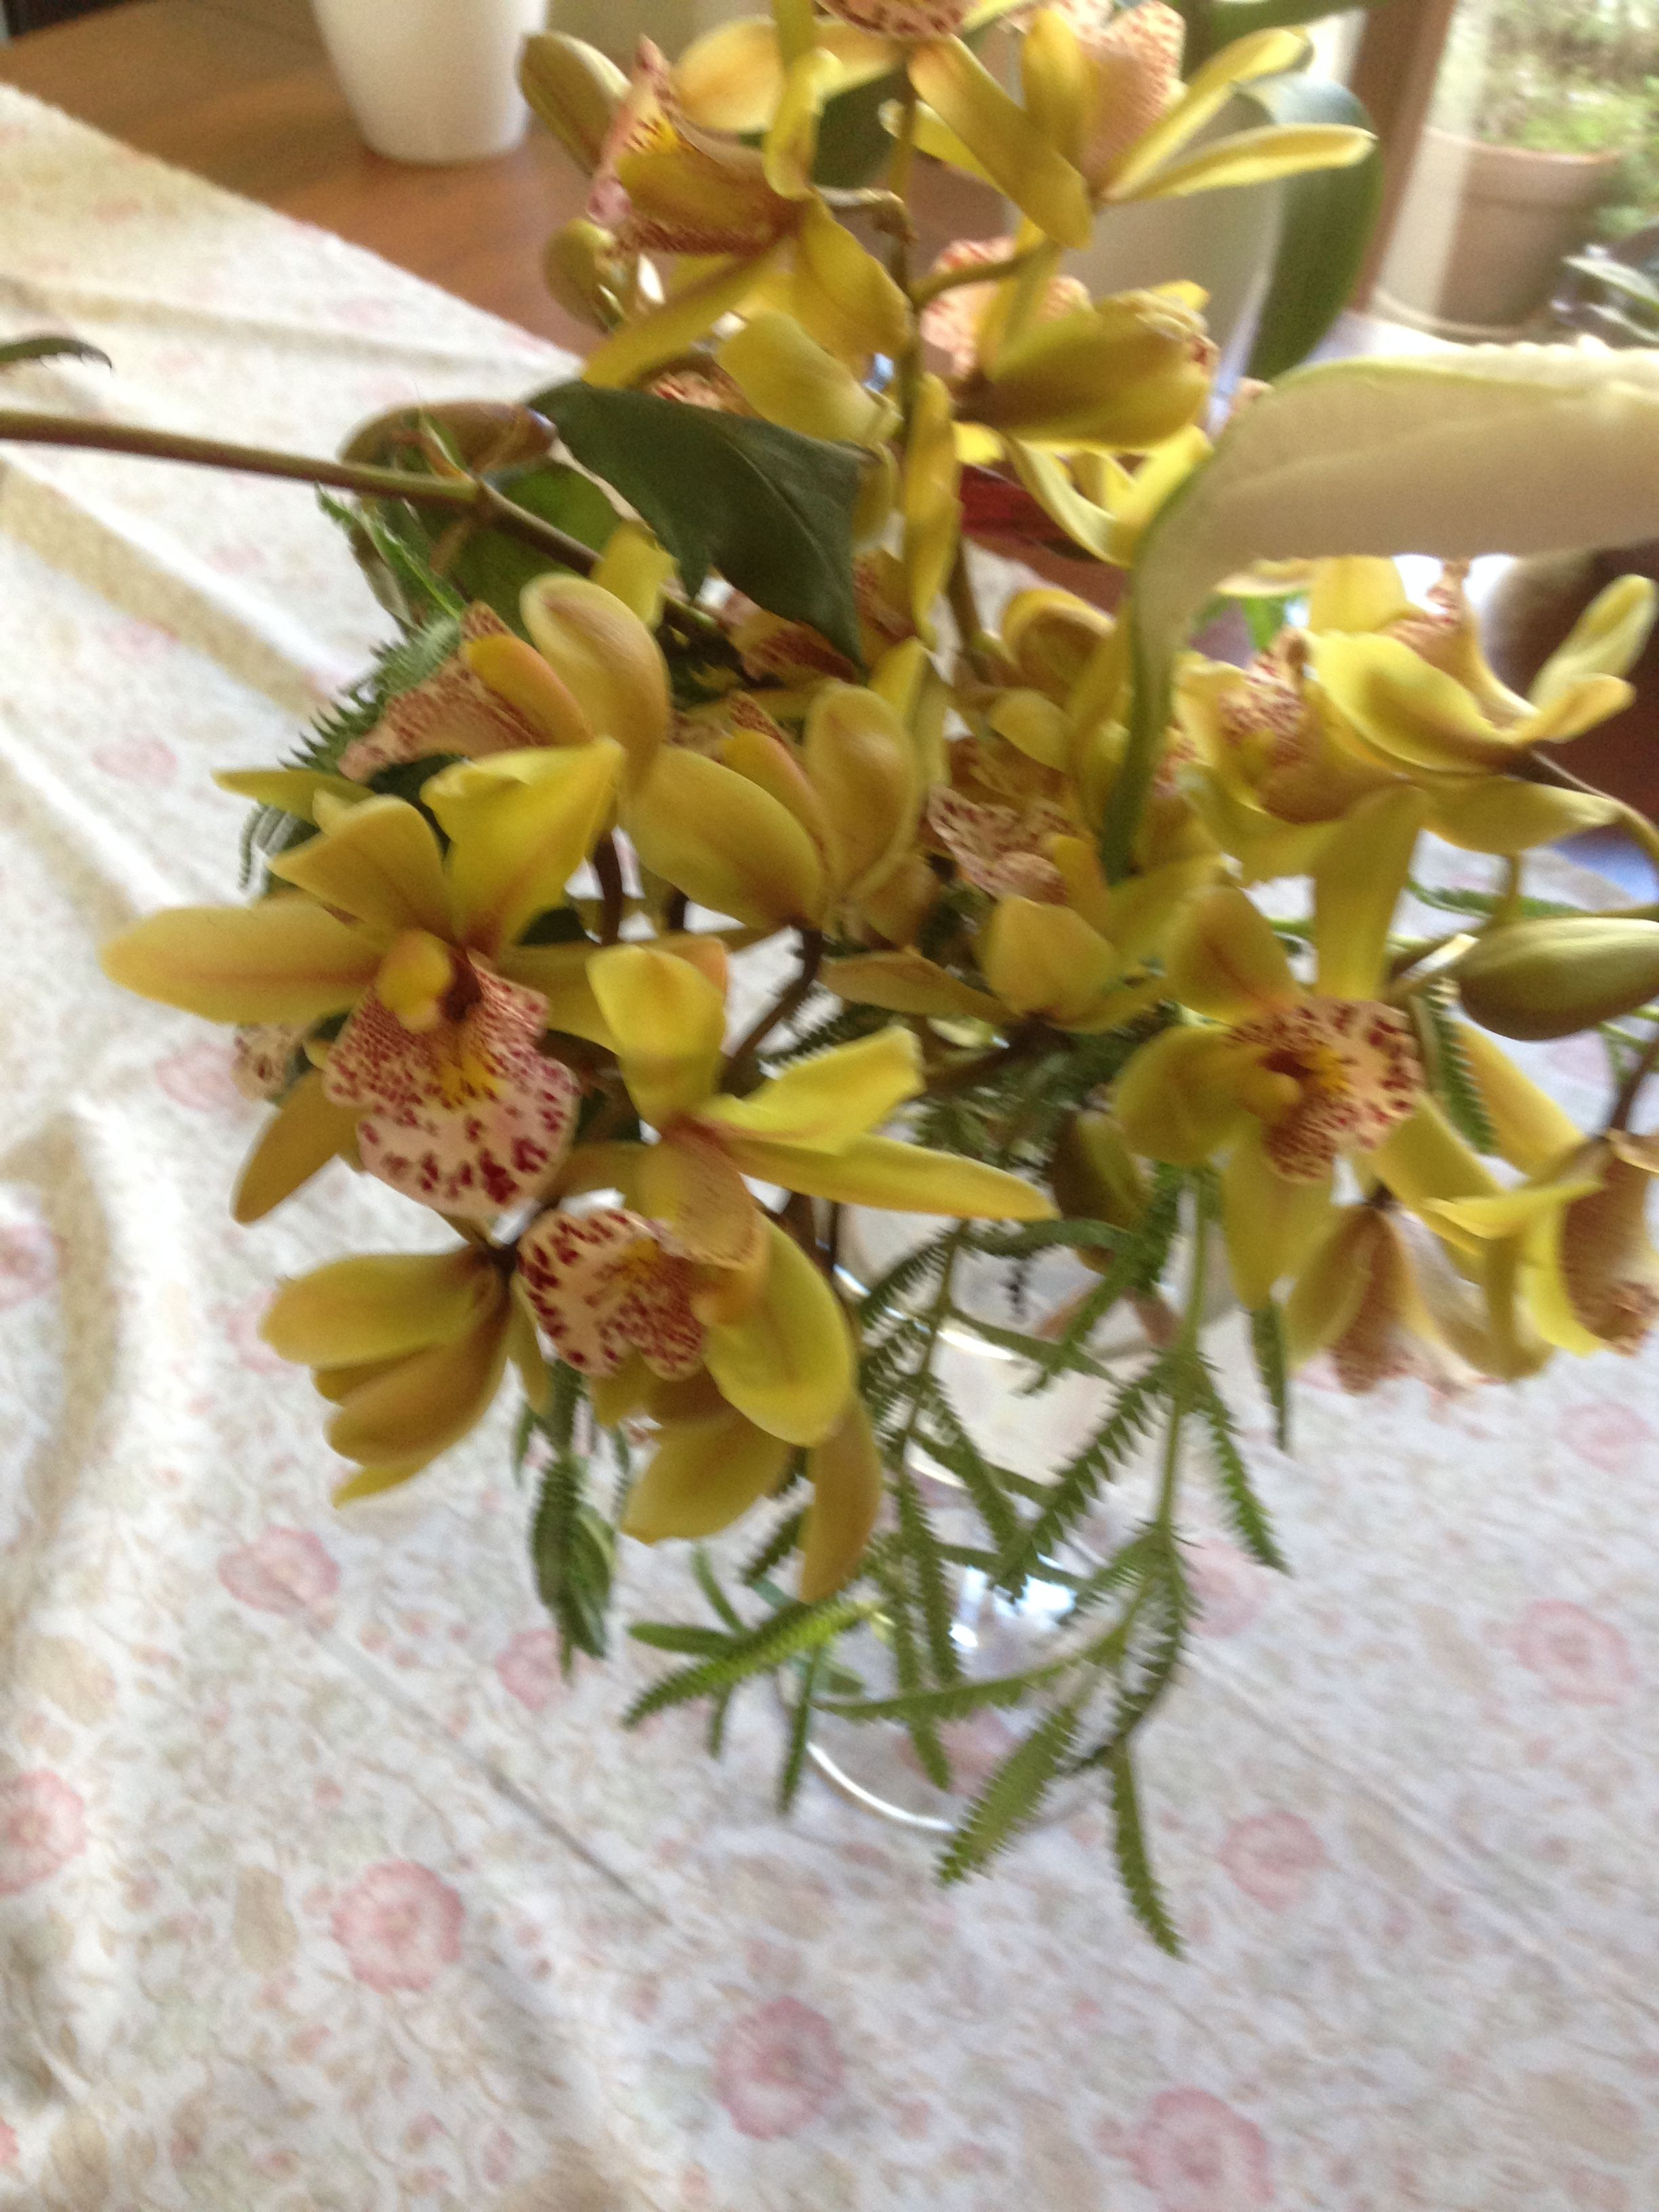 Lots Of Little Flower Spikes This Year 2015 So Brought Some Inside To Enjoy Just Love This Mini Cymbidium Flower Spike Orchid Flower Flowers